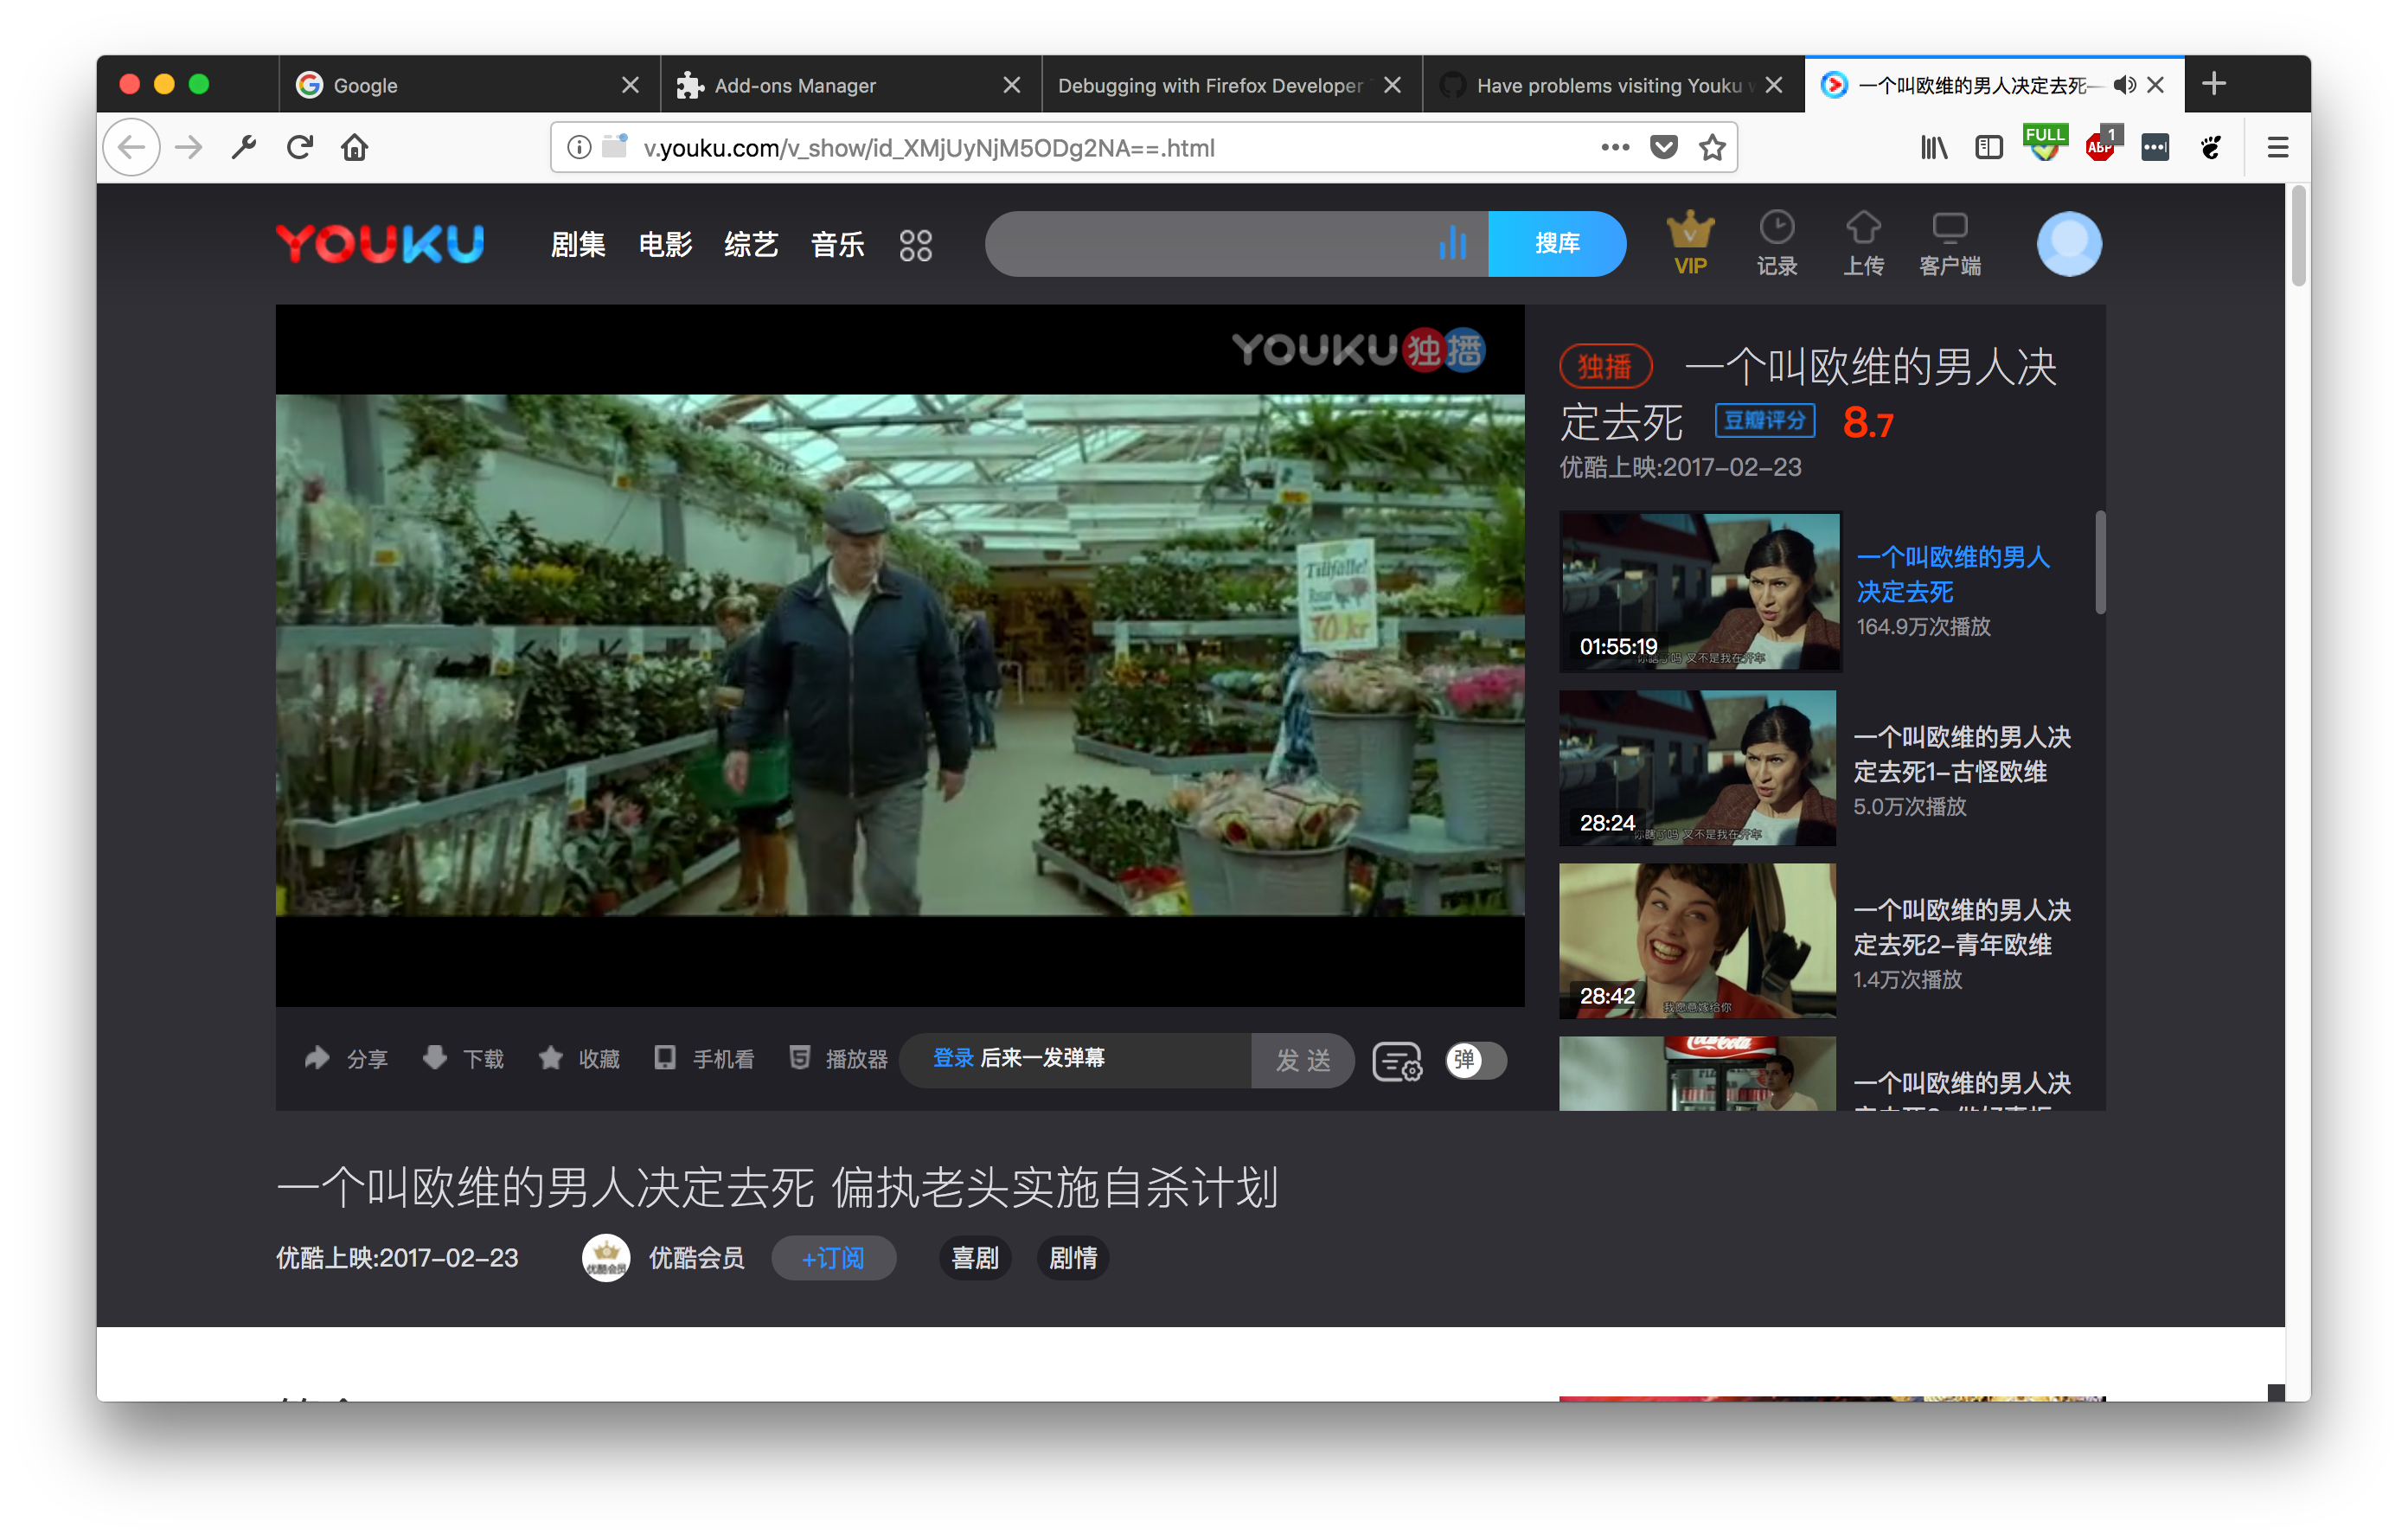 Have problems visiting Youku with Firefox add-on while fine with